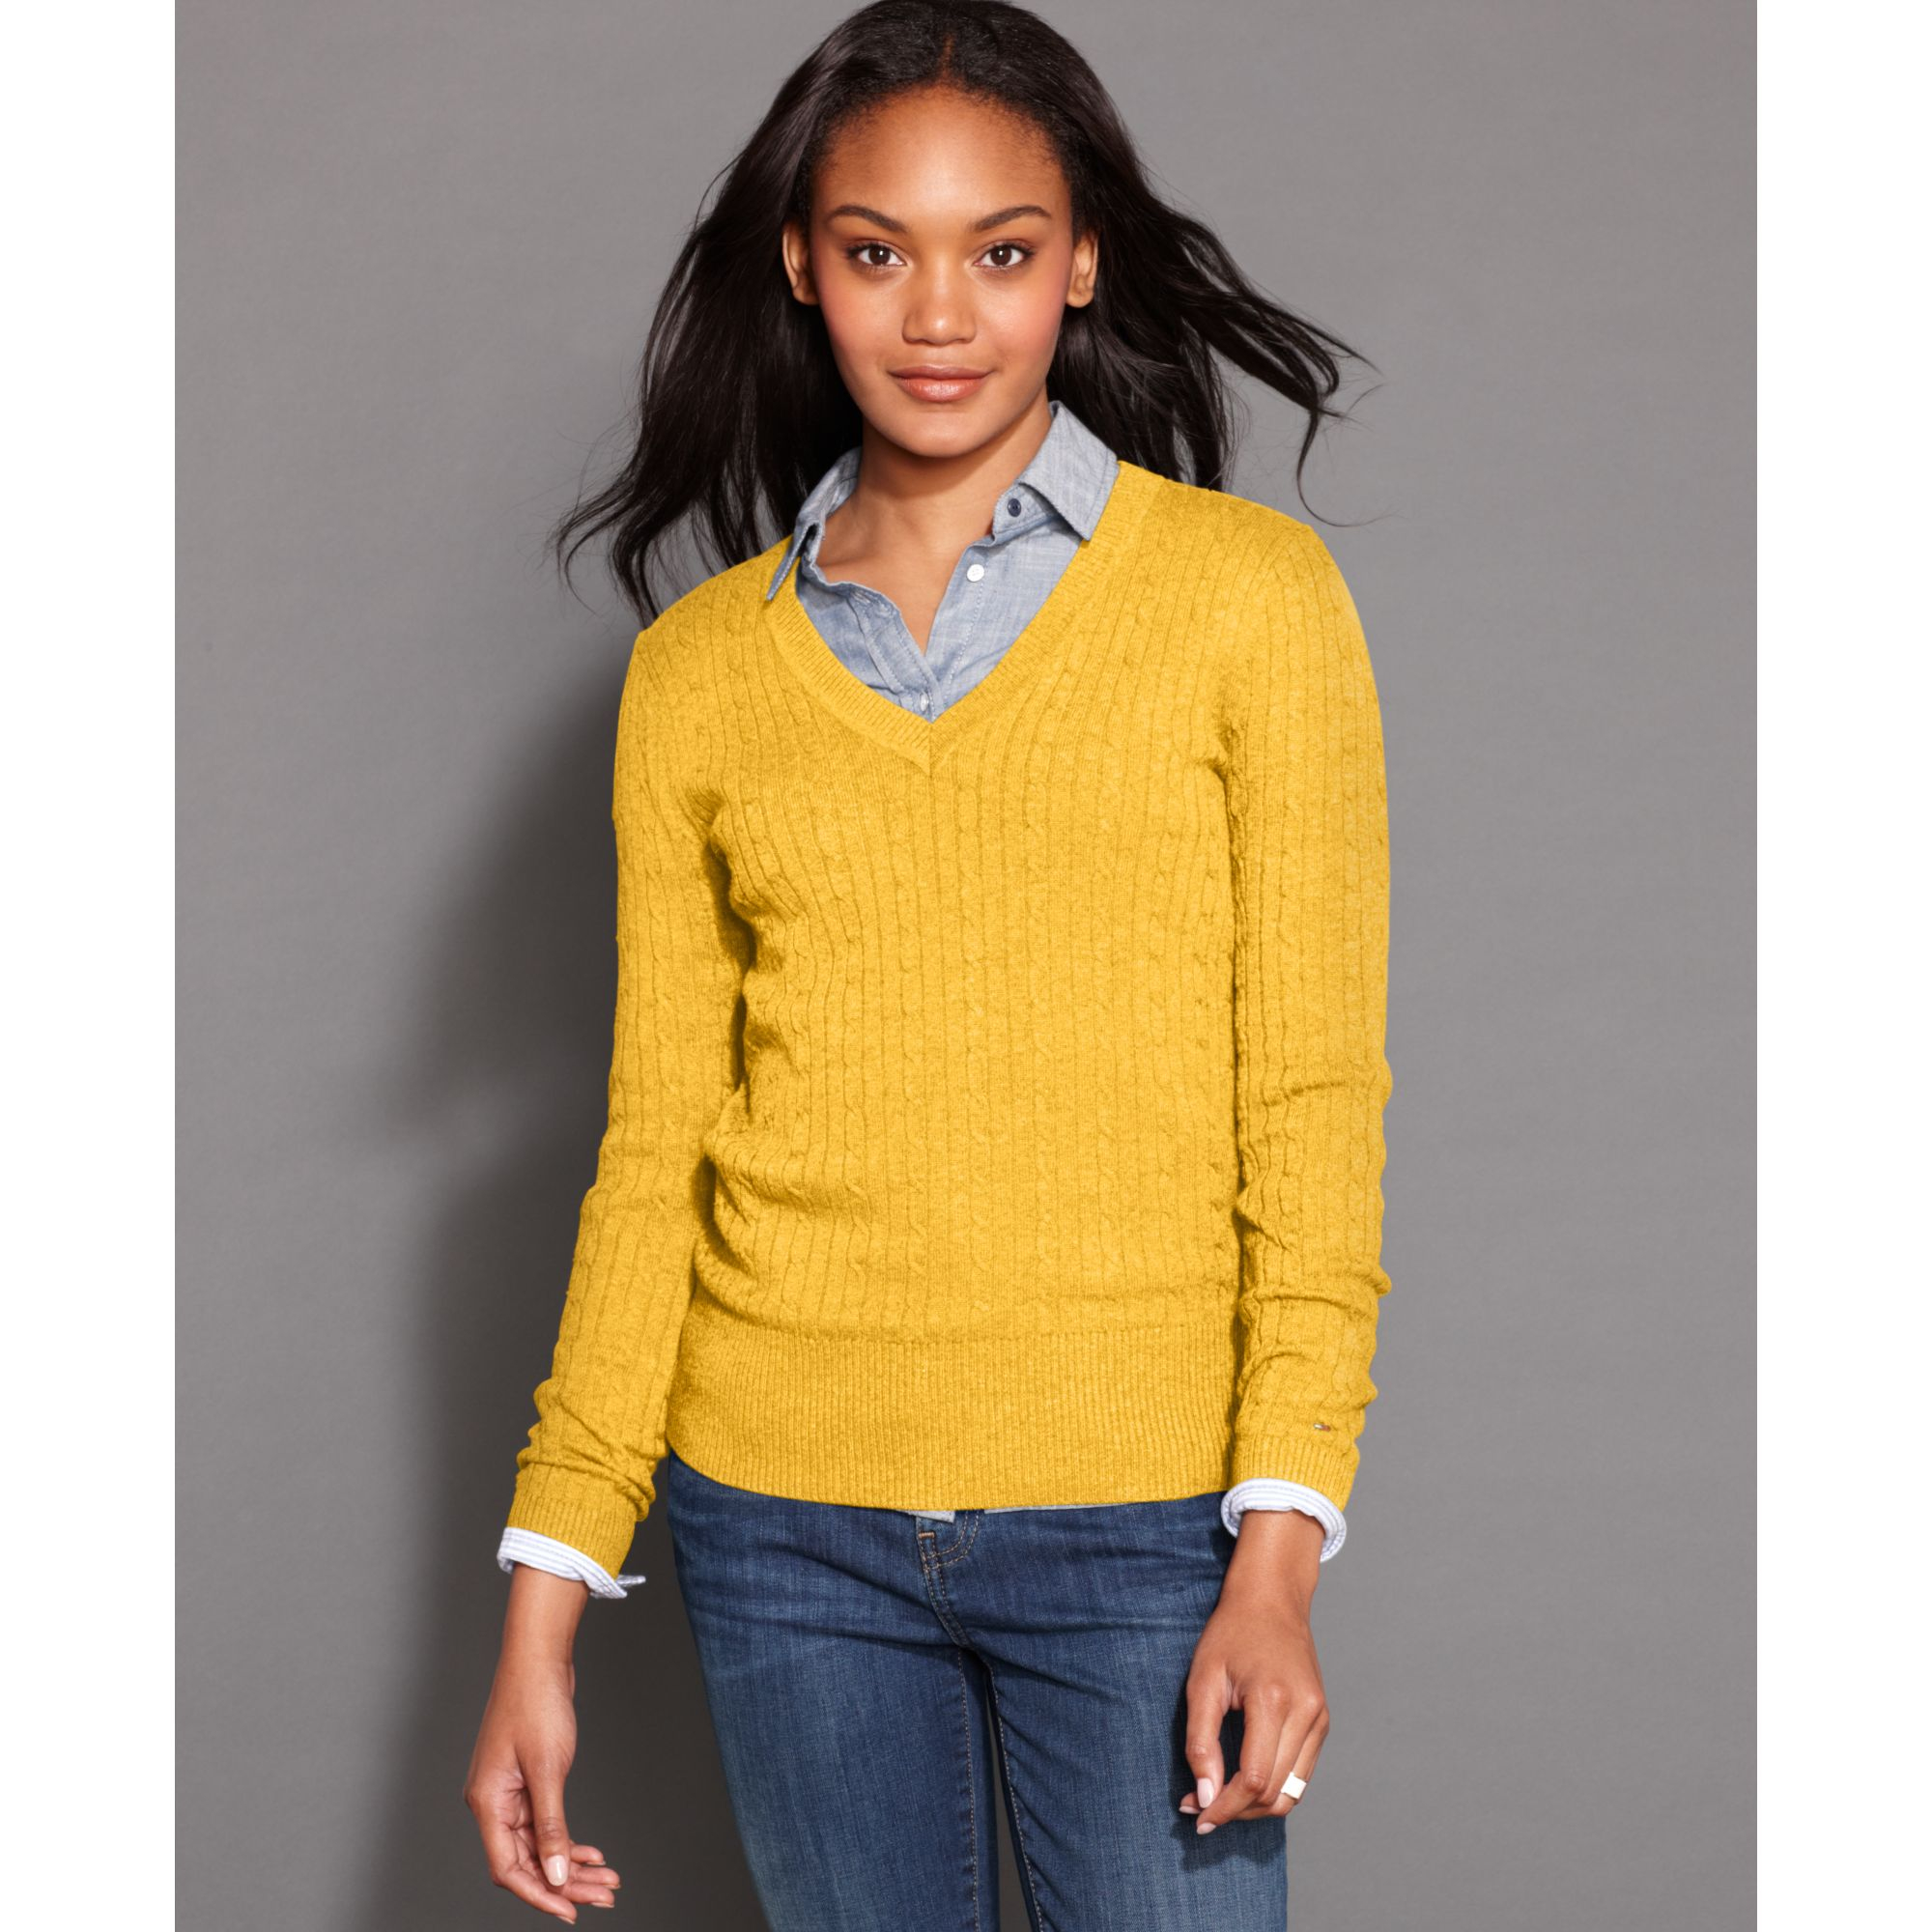 Tommy hilfiger Longsleeve Vneck Cableknit Sweater in Yellow | Lyst